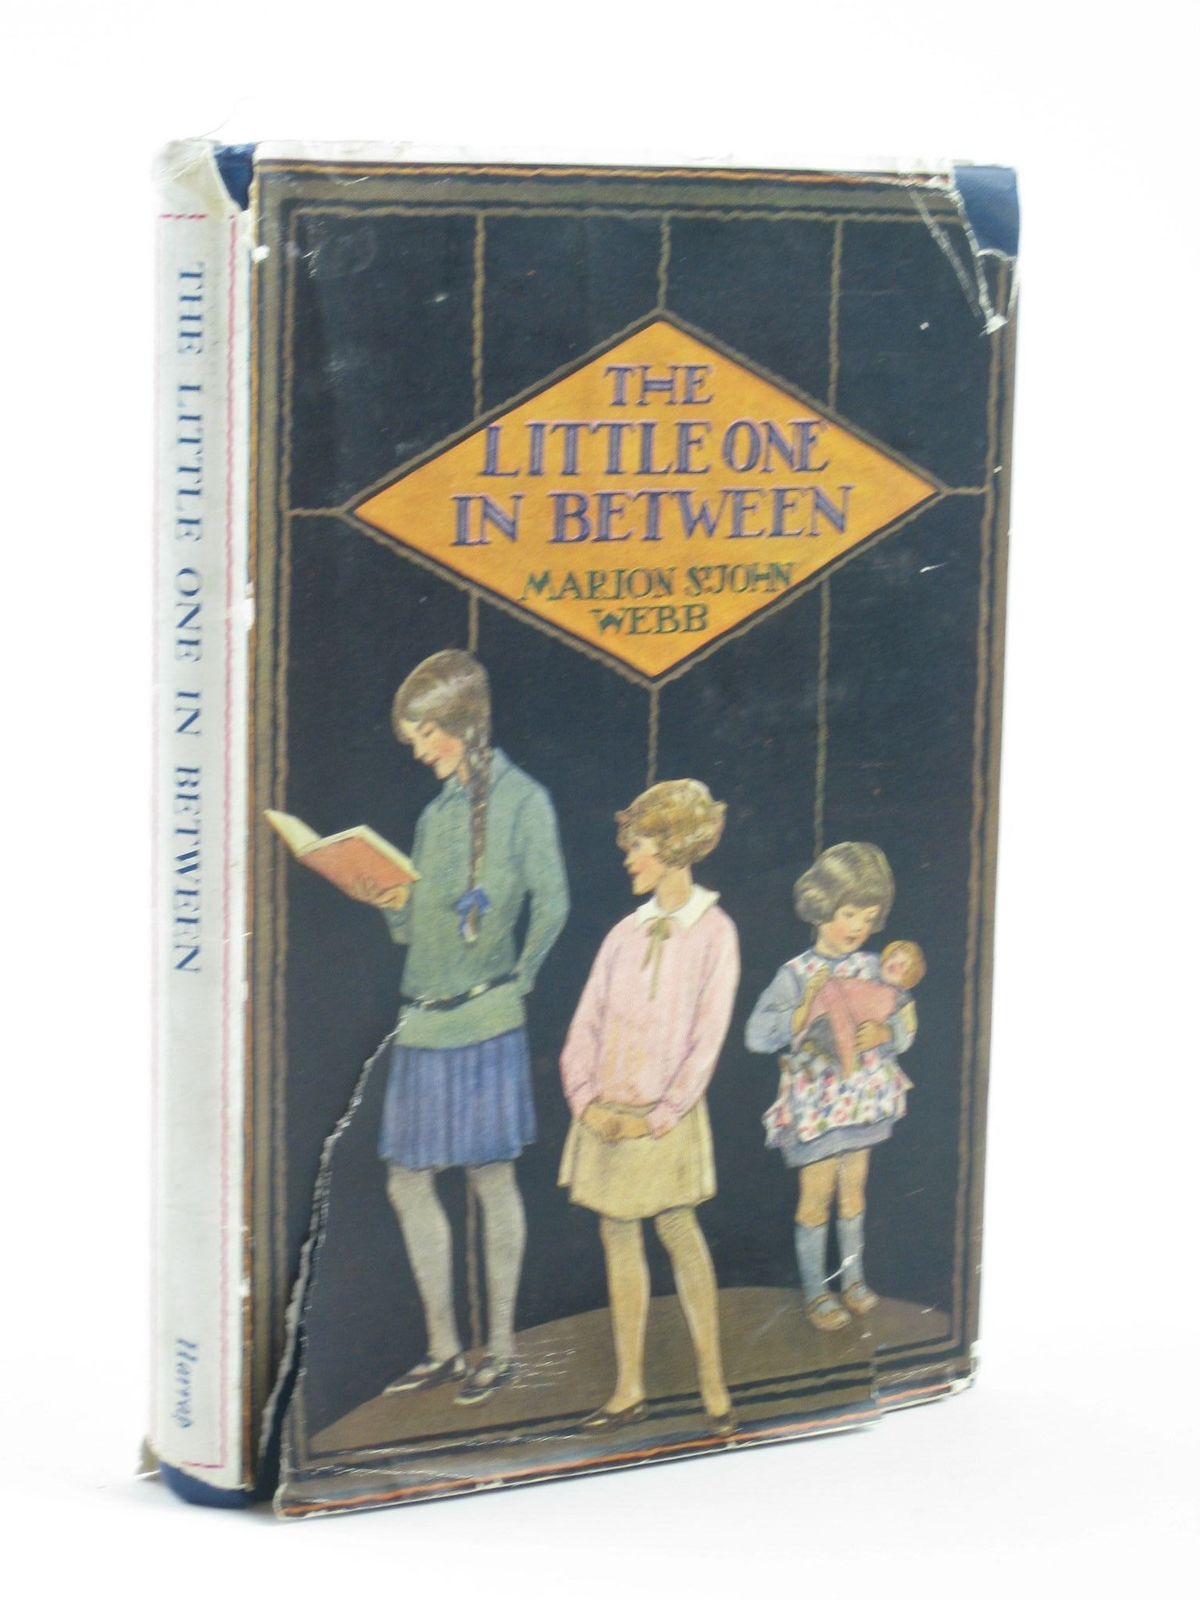 Photo of THE LITTLE ONE IN BETWEEN written by Webb, Marion St. John illustrated by Tarrant, Margaret published by George G. Harrap & Co. Ltd. (STOCK CODE: 1501729)  for sale by Stella & Rose's Books